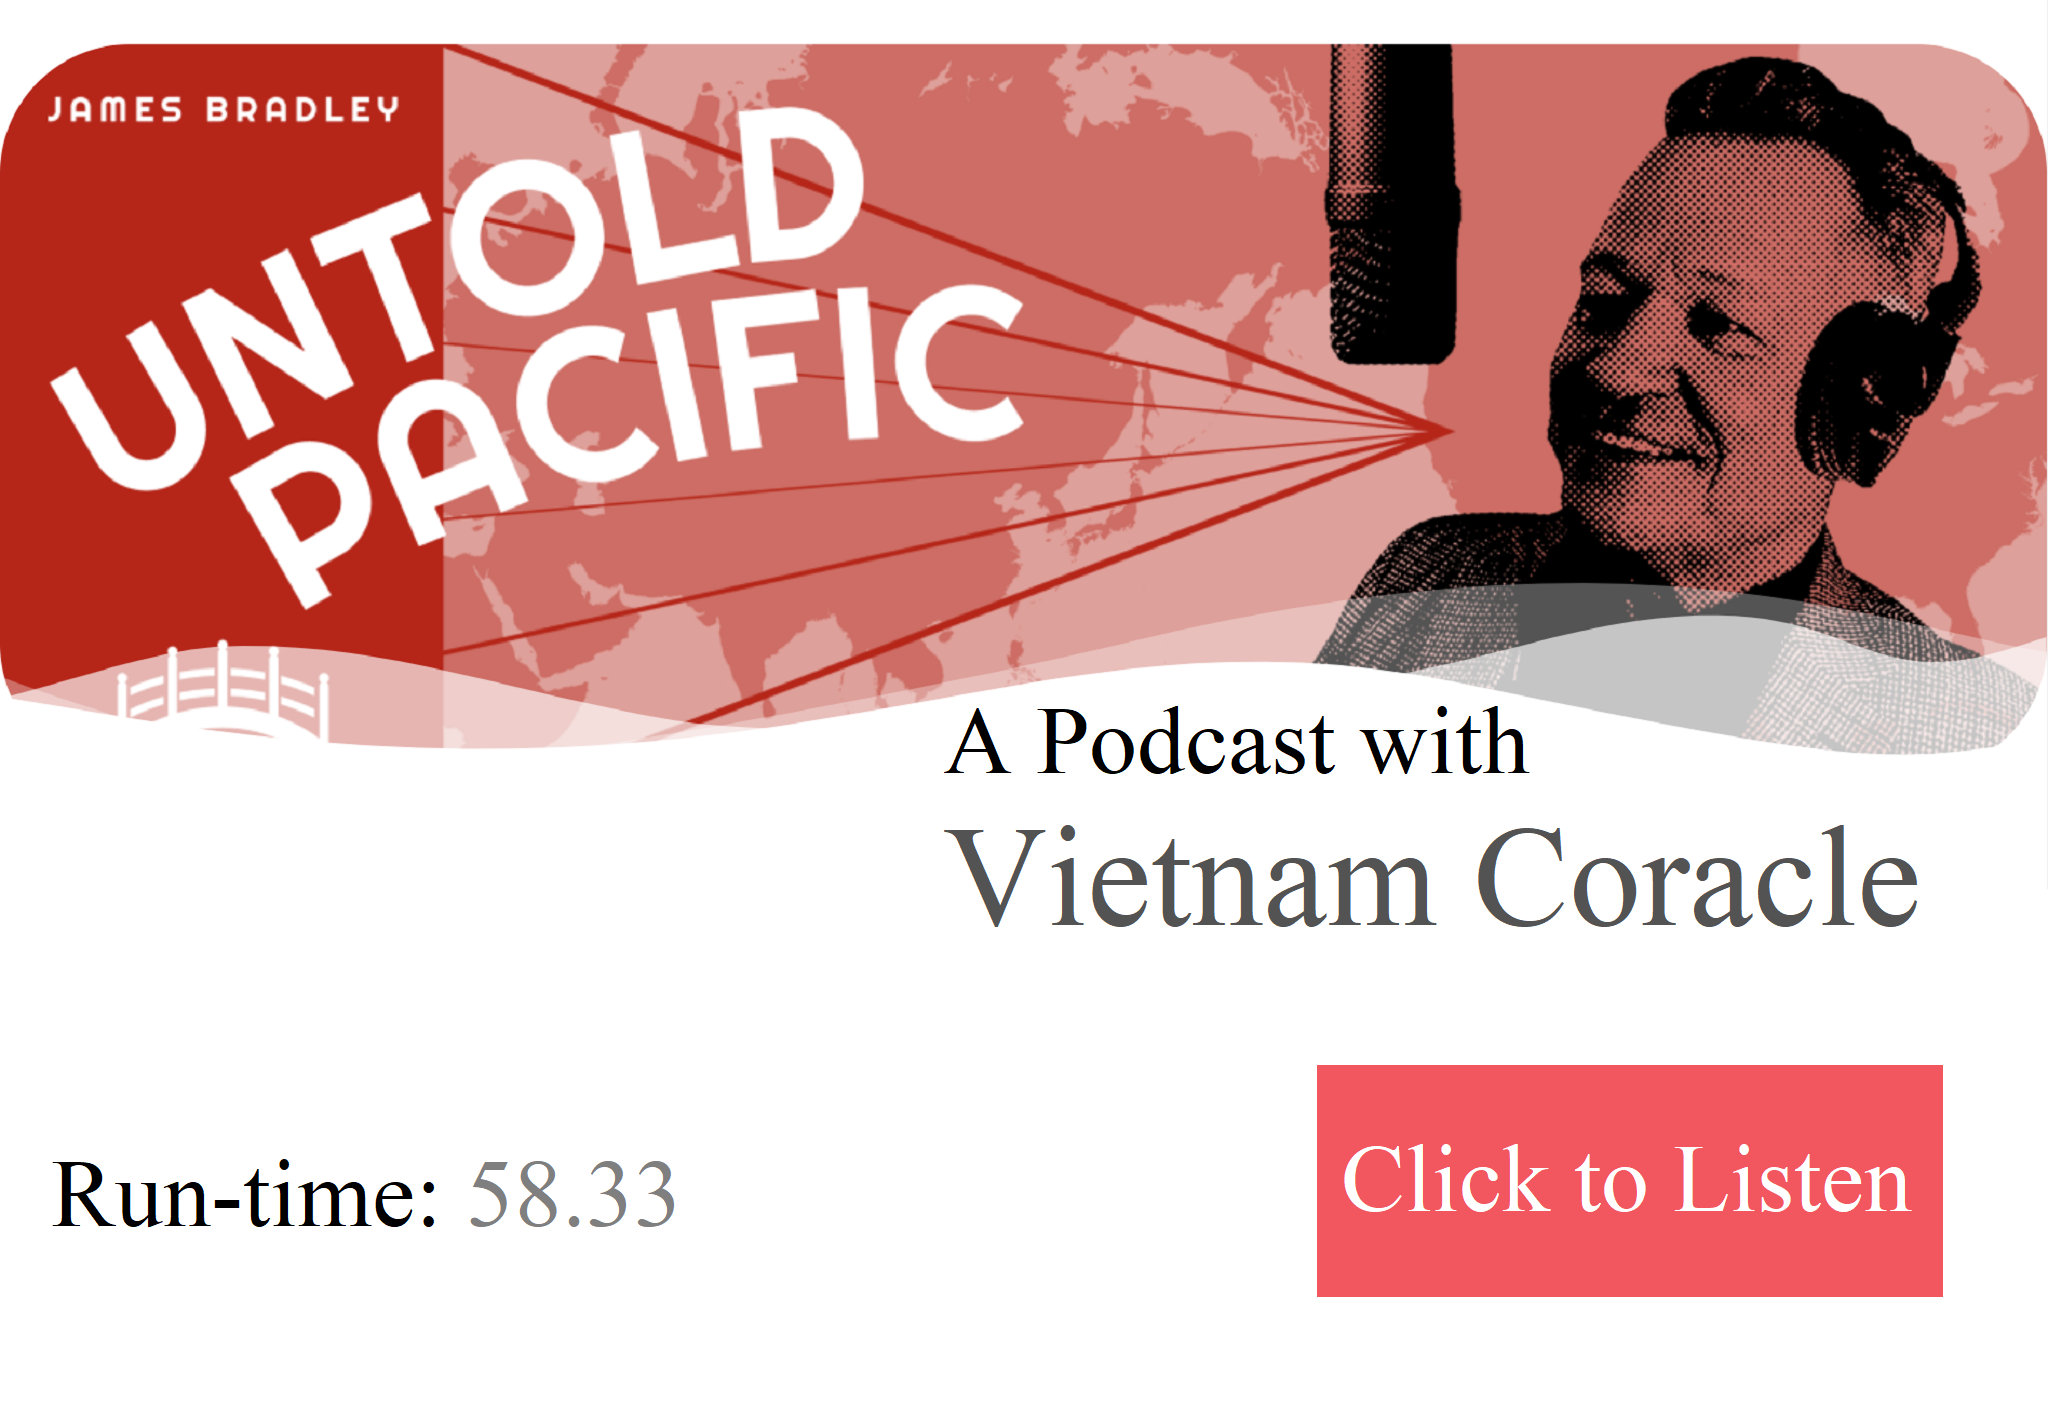 Vietnam Coracle on the Untold Pacific Podcast with James Bradley